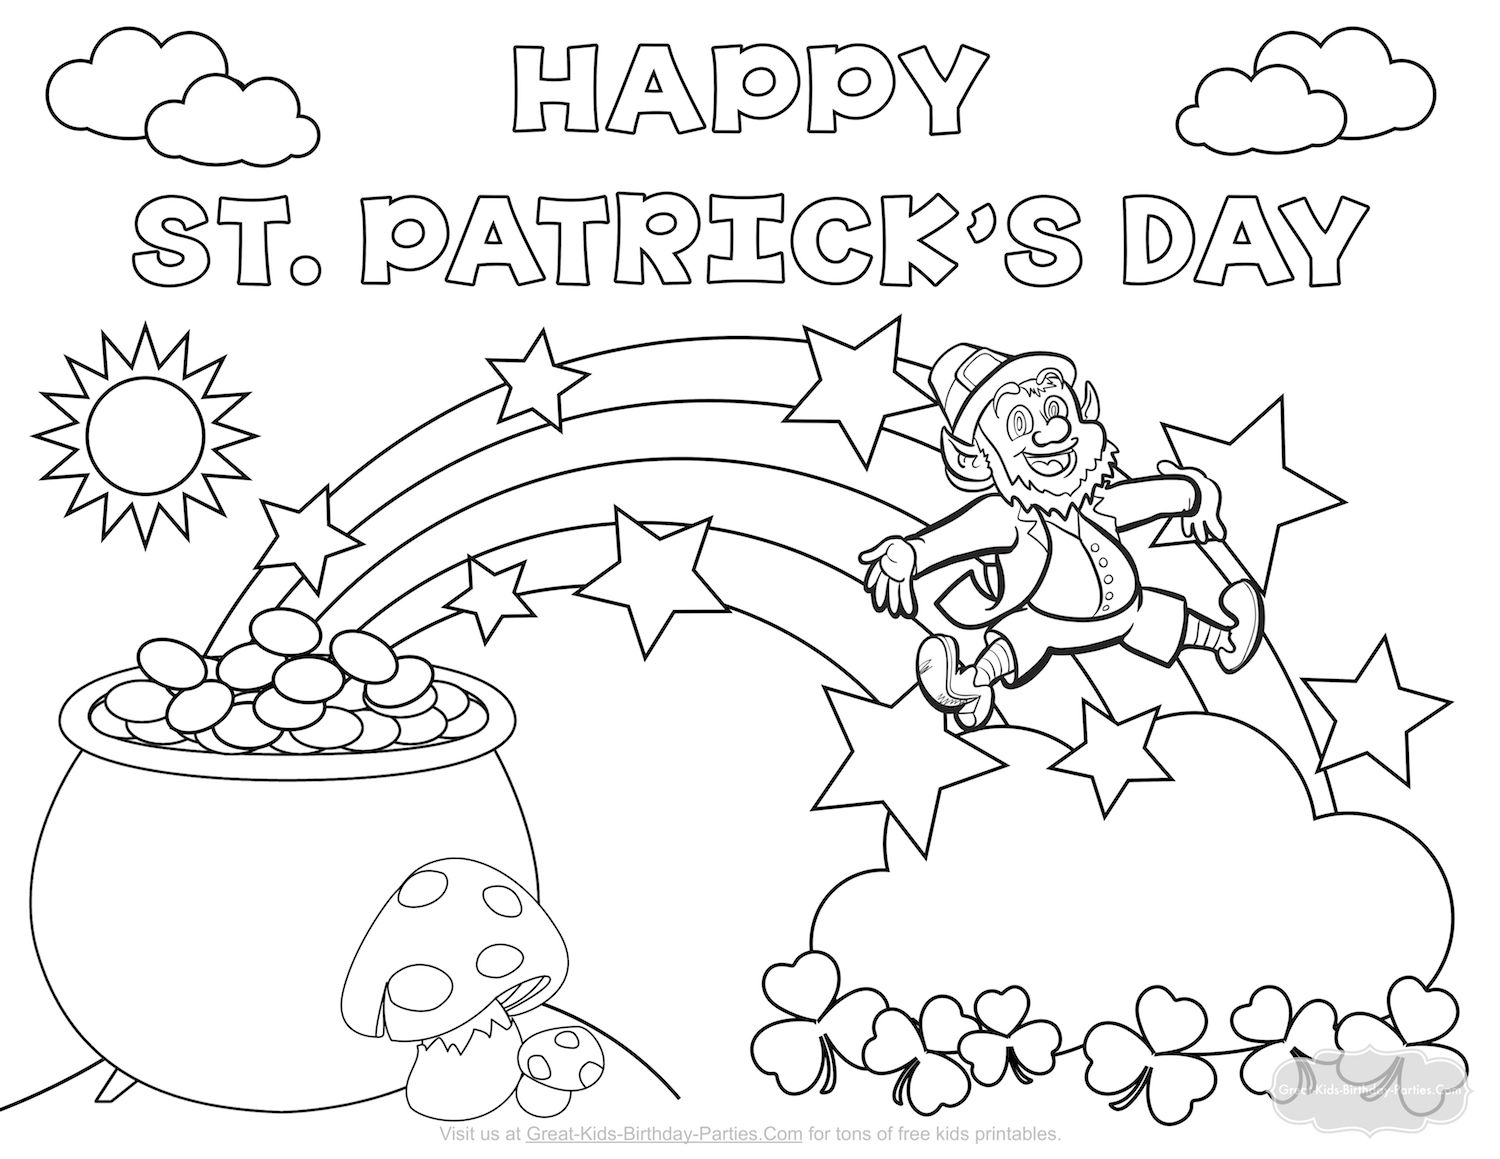 St Patrick S Day St Patrick Day Activities St Patricks Day Crafts For Kids St Patrick S Day Crafts